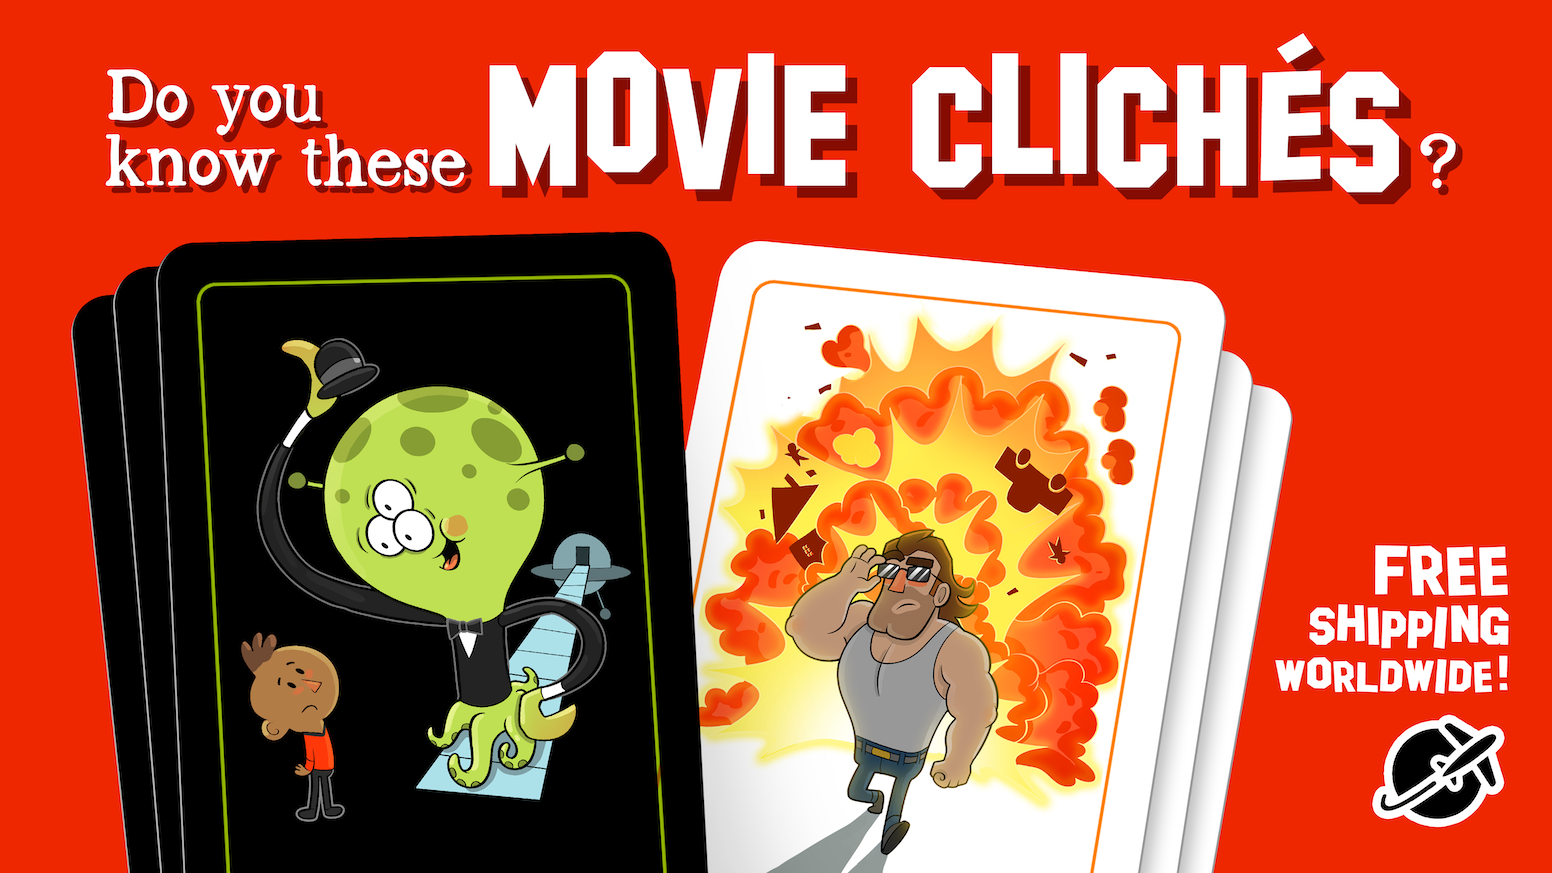 A card game made by (bad) movies.